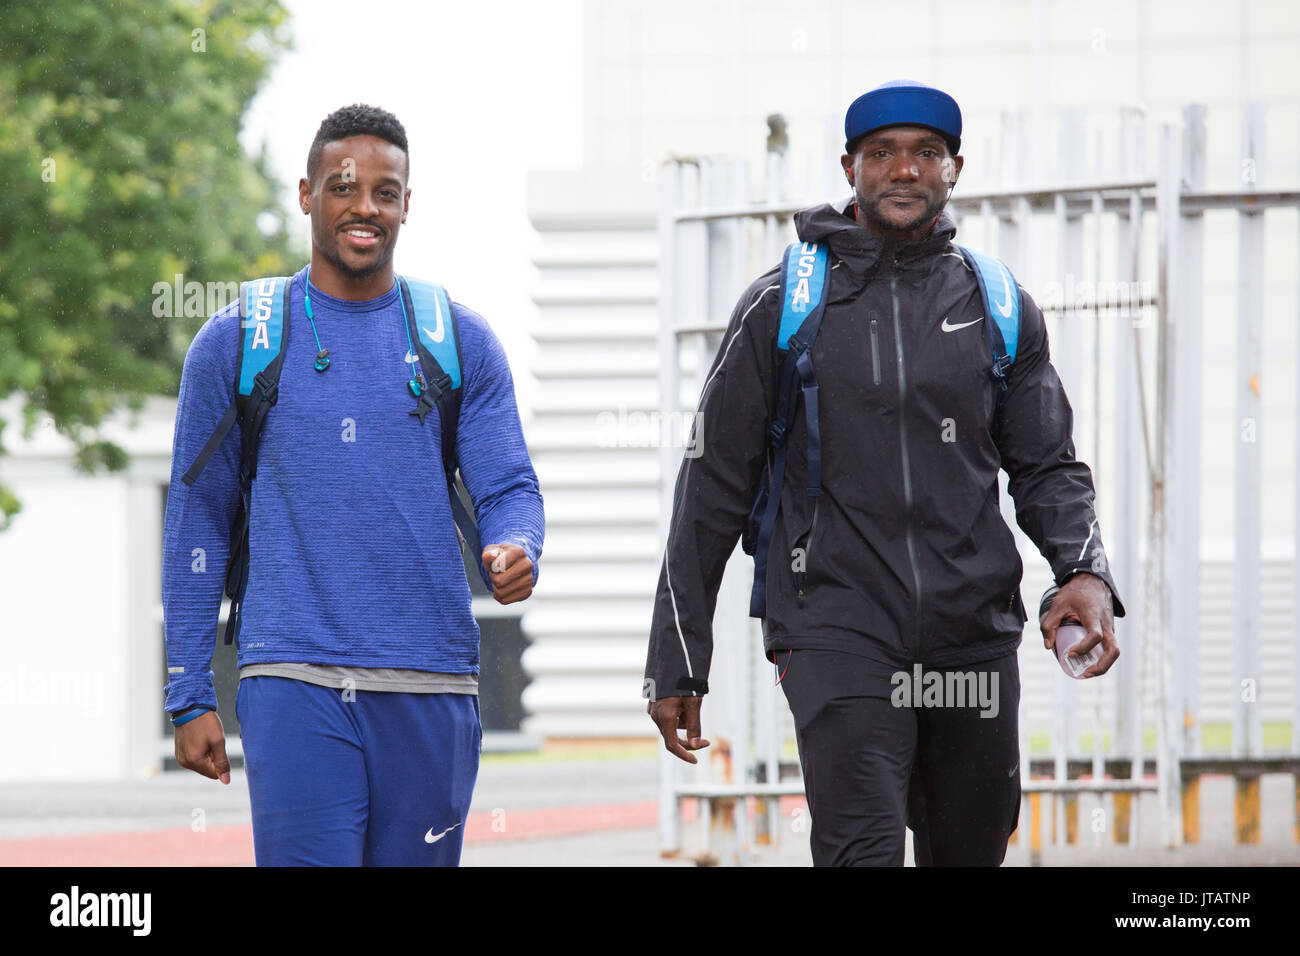 Justin Gatlin, right and Isiah Young, left about to start training for the World Athletic championships at their camp in Birmingham UK - Stock Image